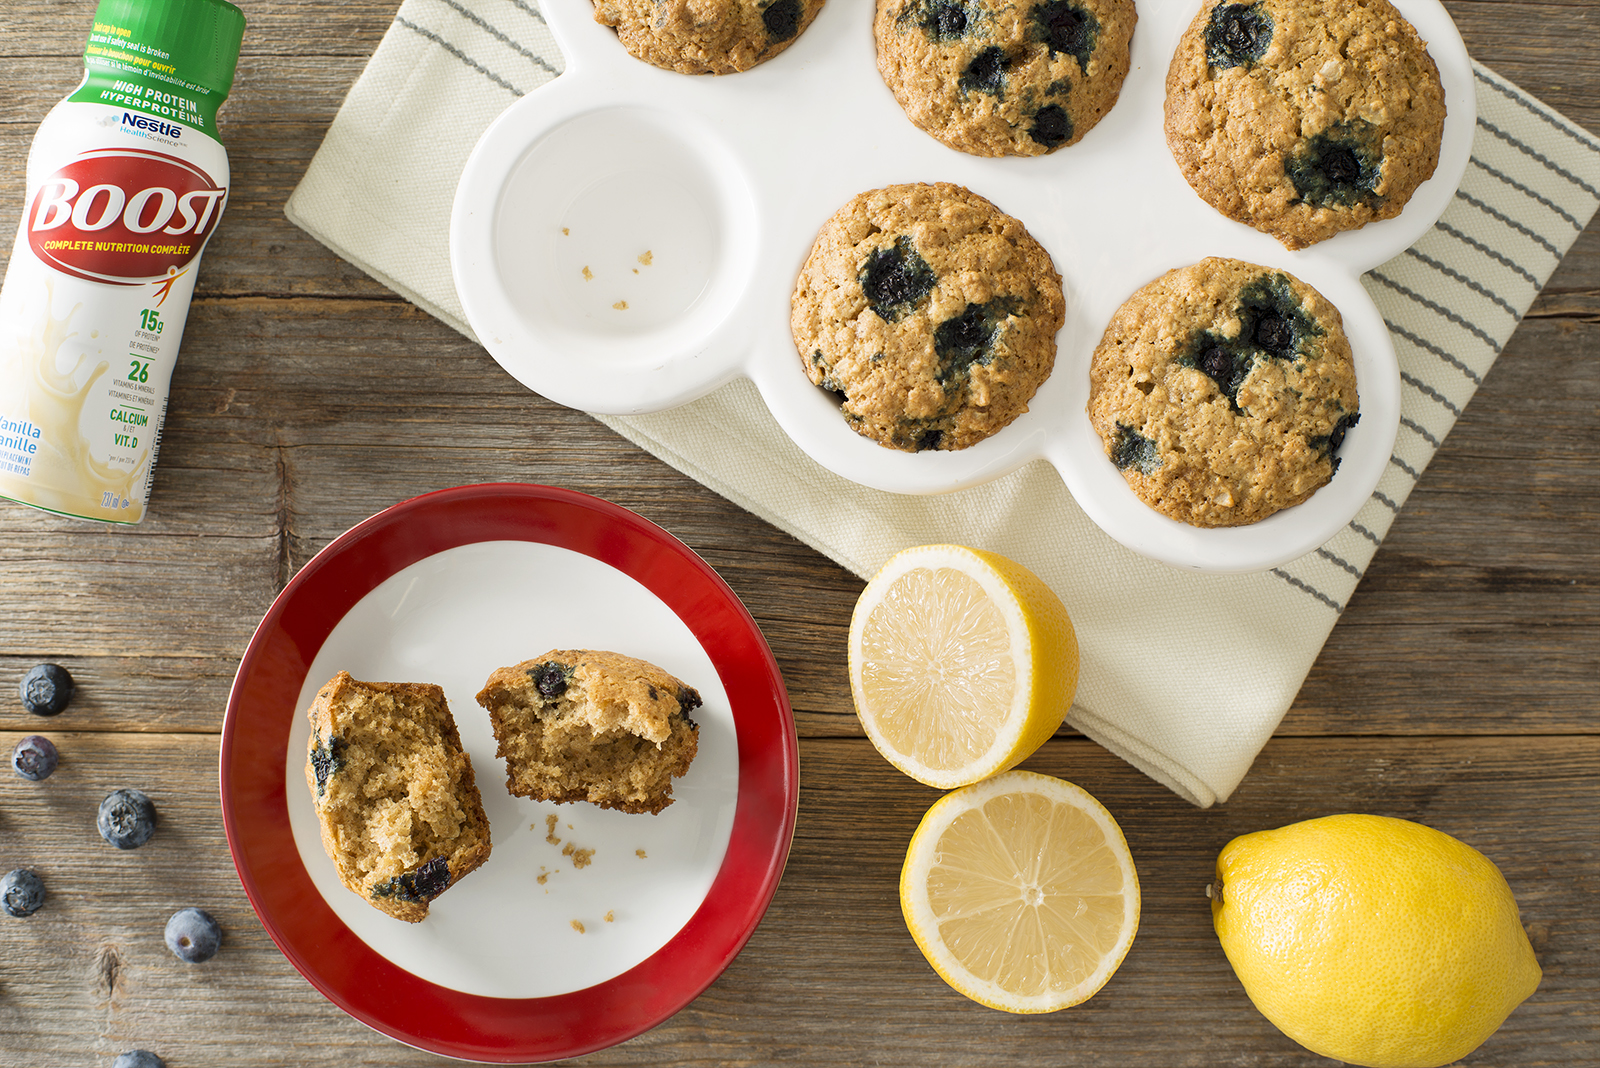 Boost High Protein Lemon Blueberry Oatmeal Muffins